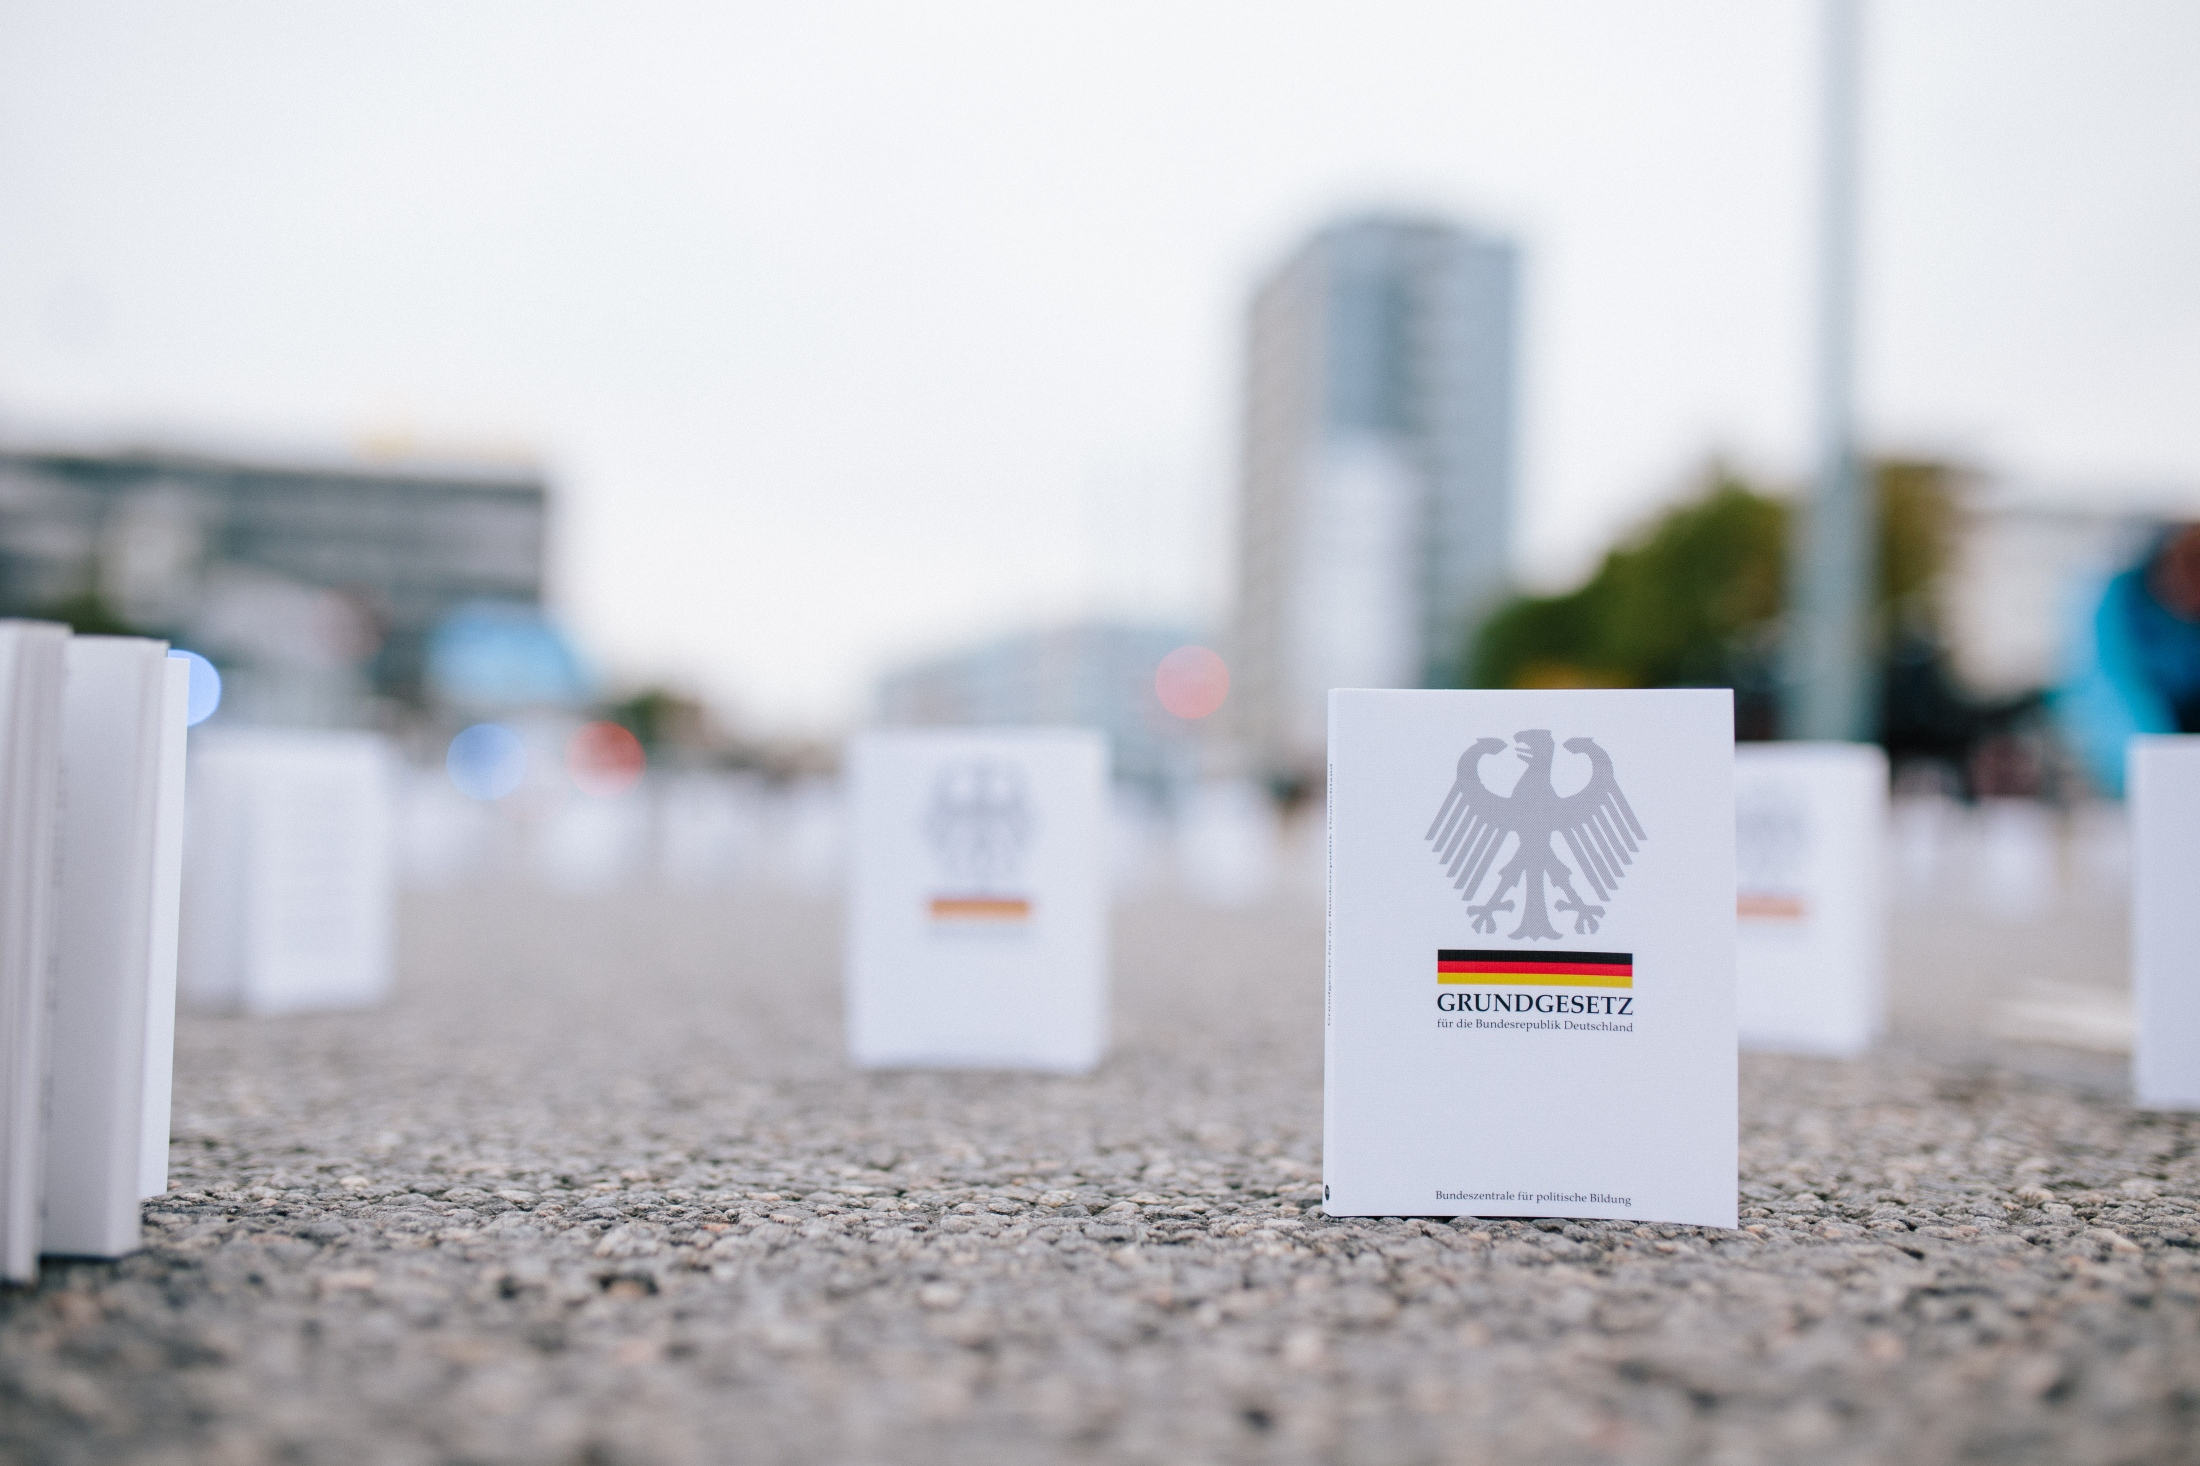 German constitution placed in front of the sit-in on the route of the demonstration.